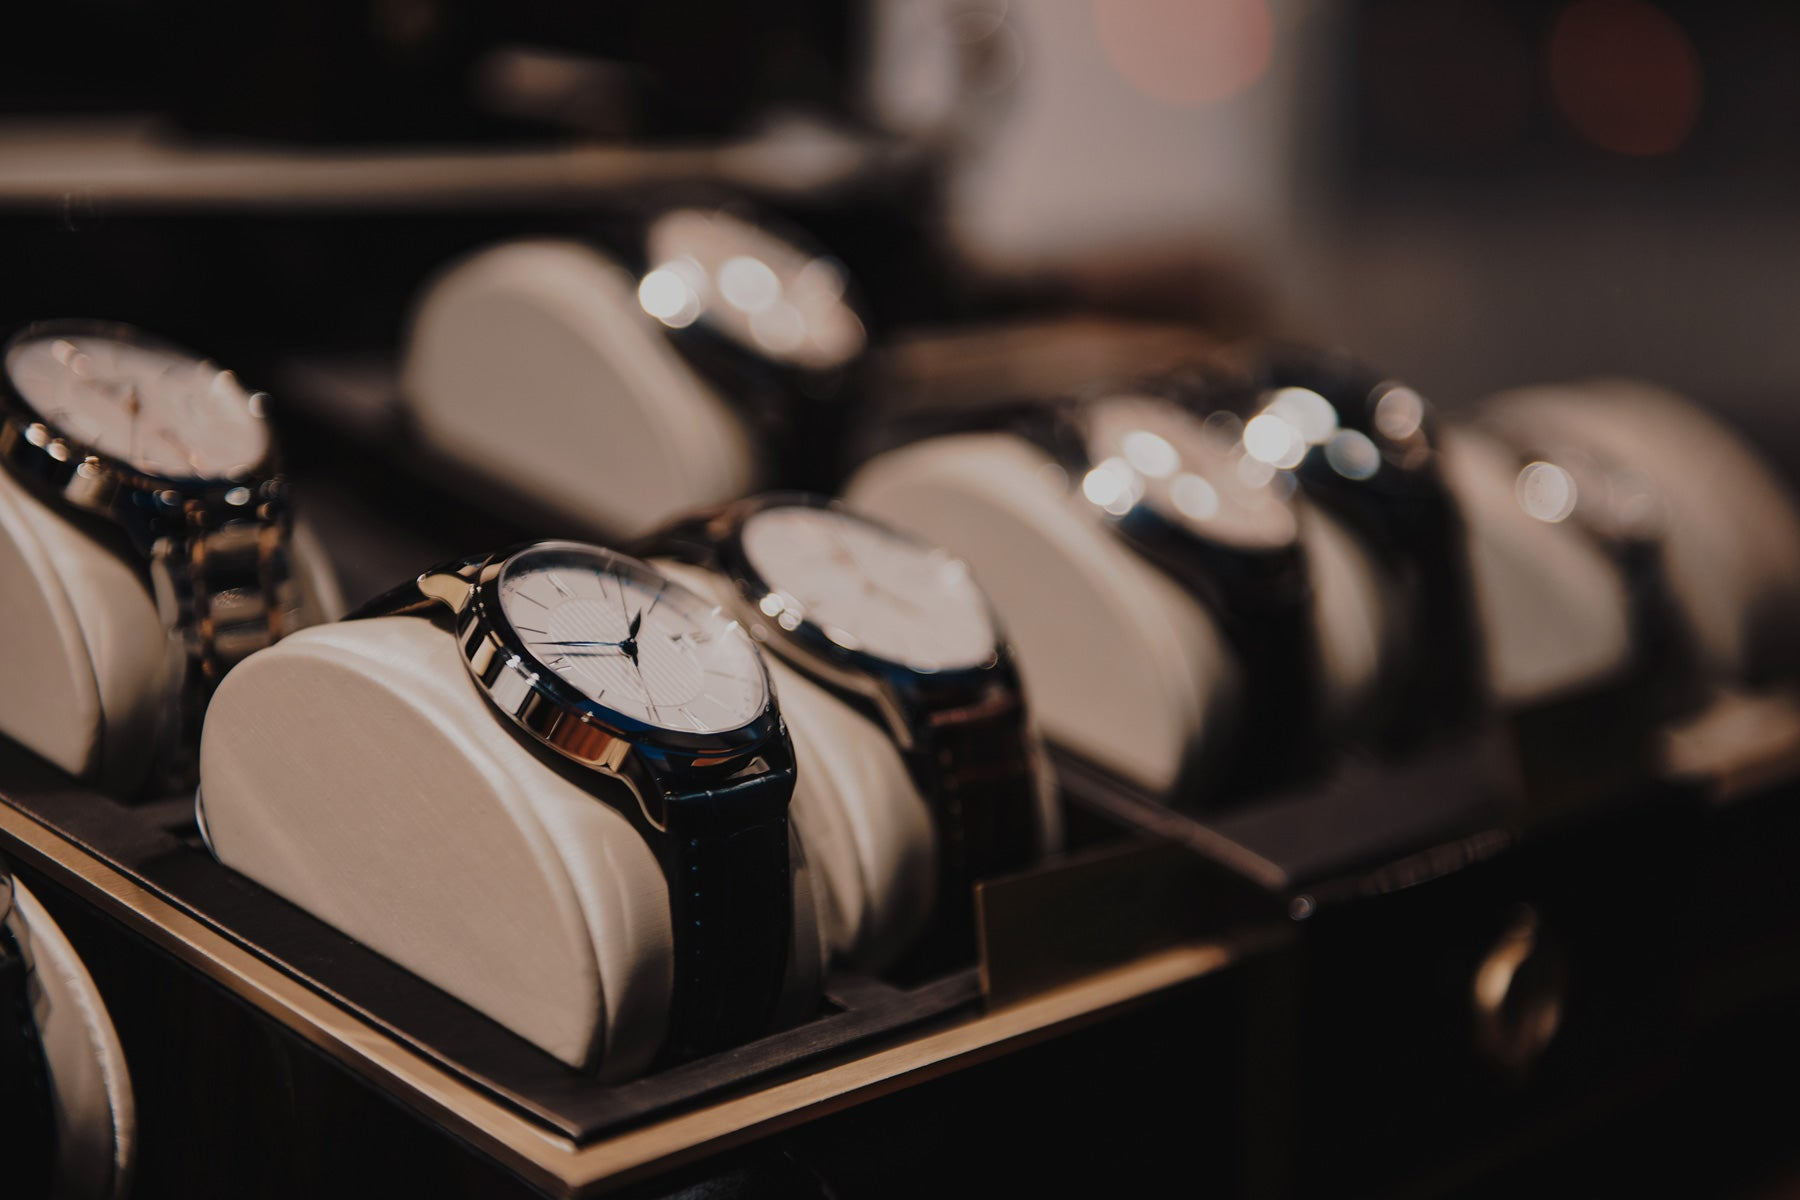 Steinhausen Watches by The Black Bow Jewelry Company